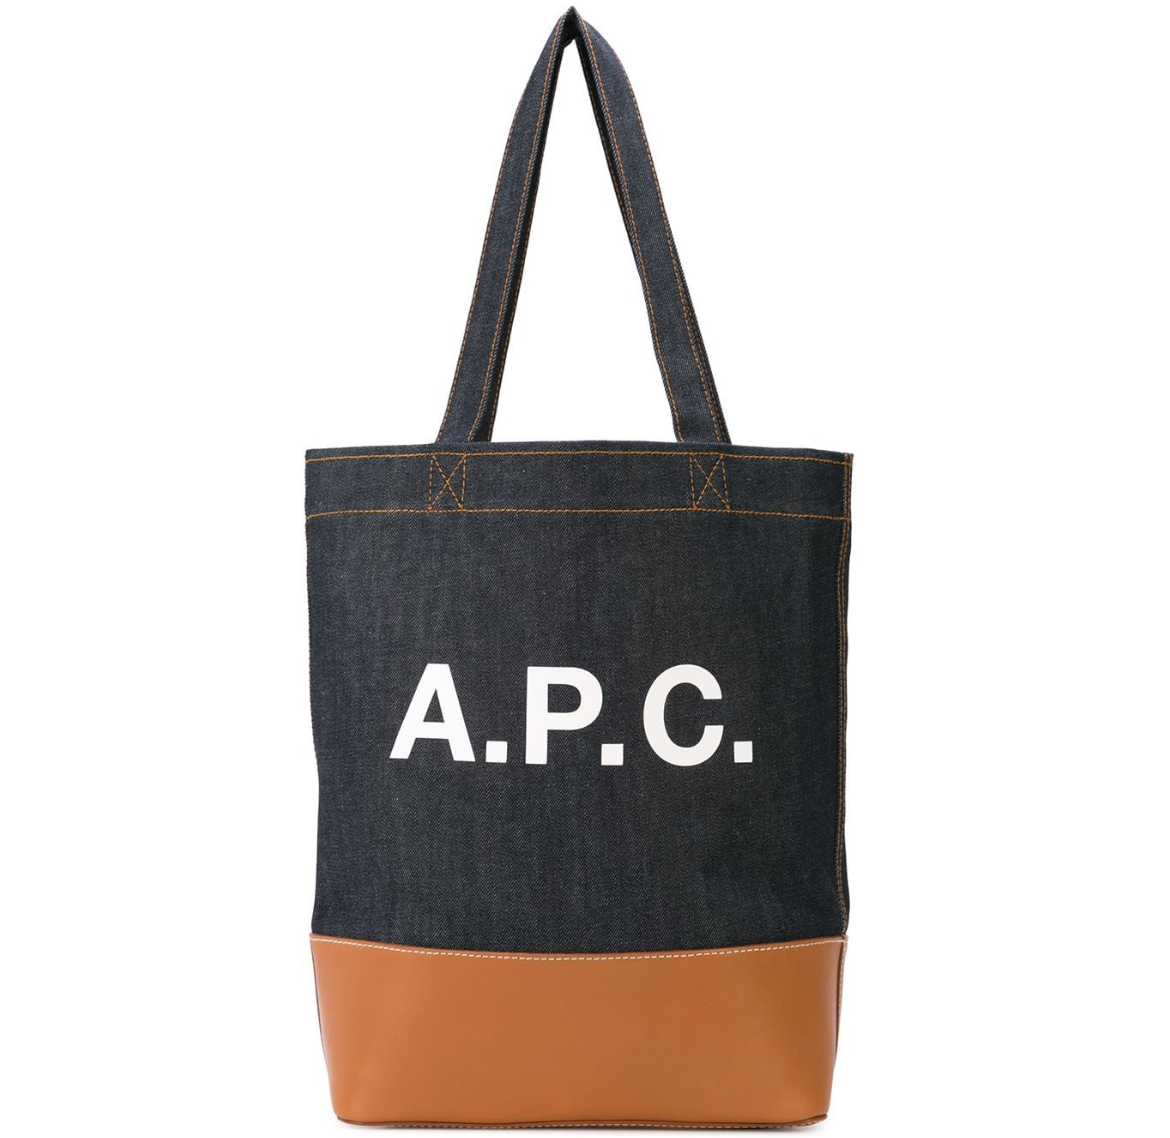 $325 - APC denim tote   STOP using plastic bags when you grocery shop!! It's 2018. Use this instead!! I'm so in love with this A.P.C denim and leather tote. A perfect addition to any outfit!